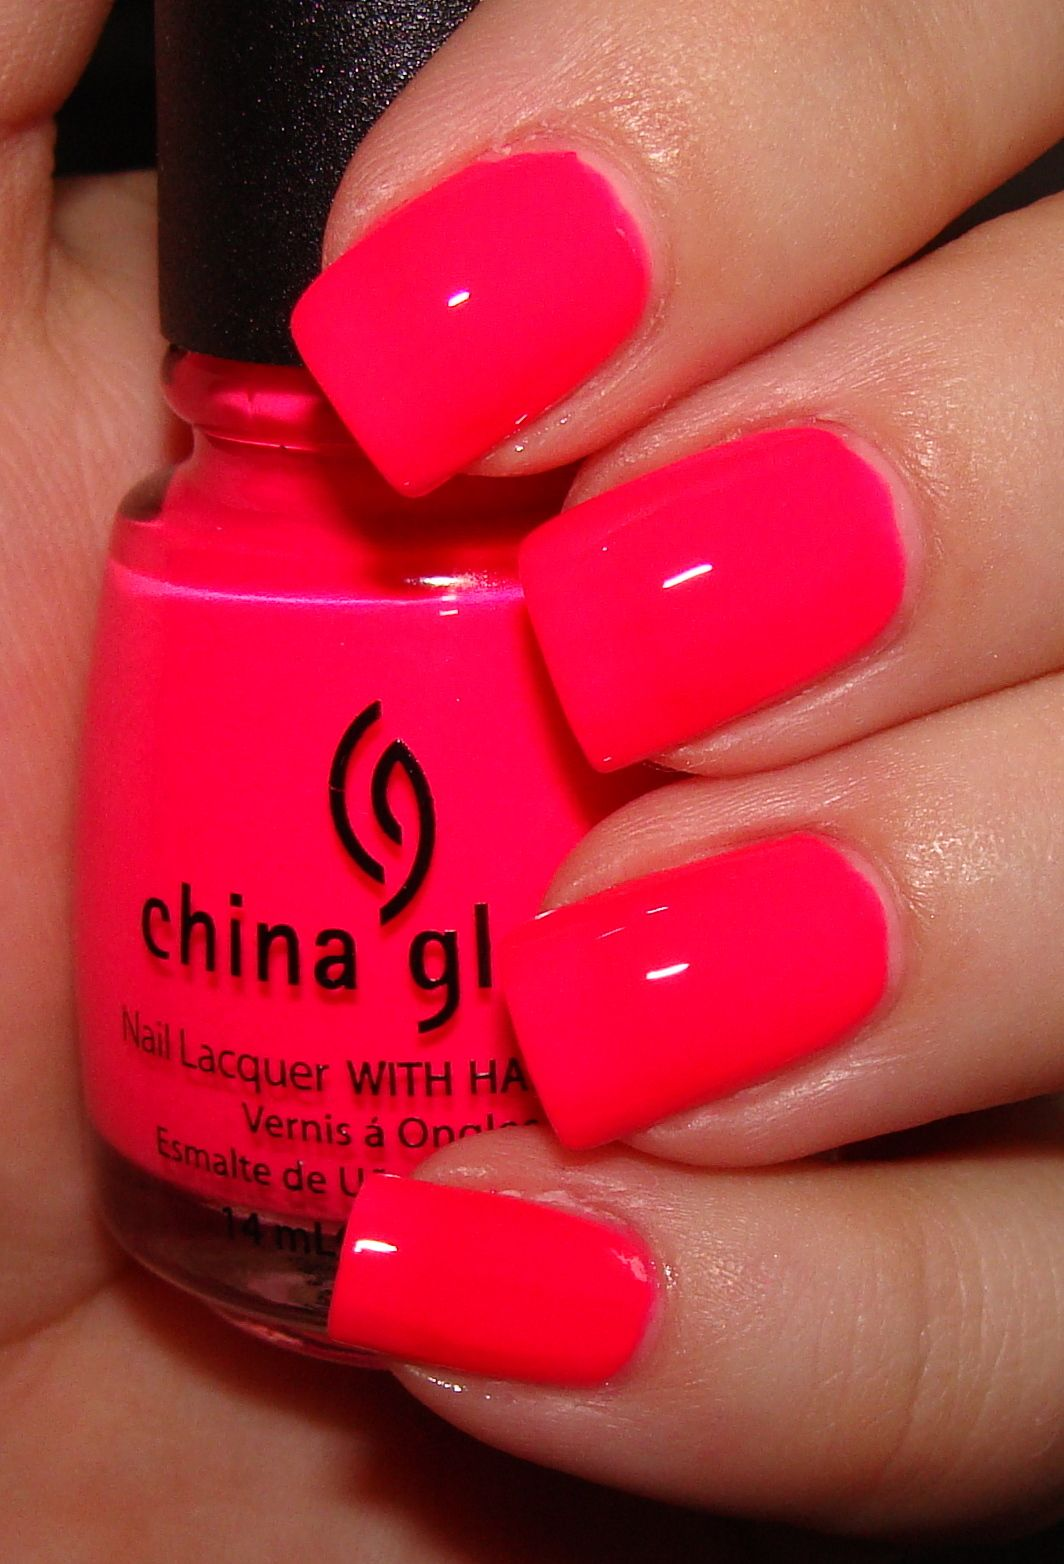 china glaze nail polish - 14ml - reds & corals - you choose